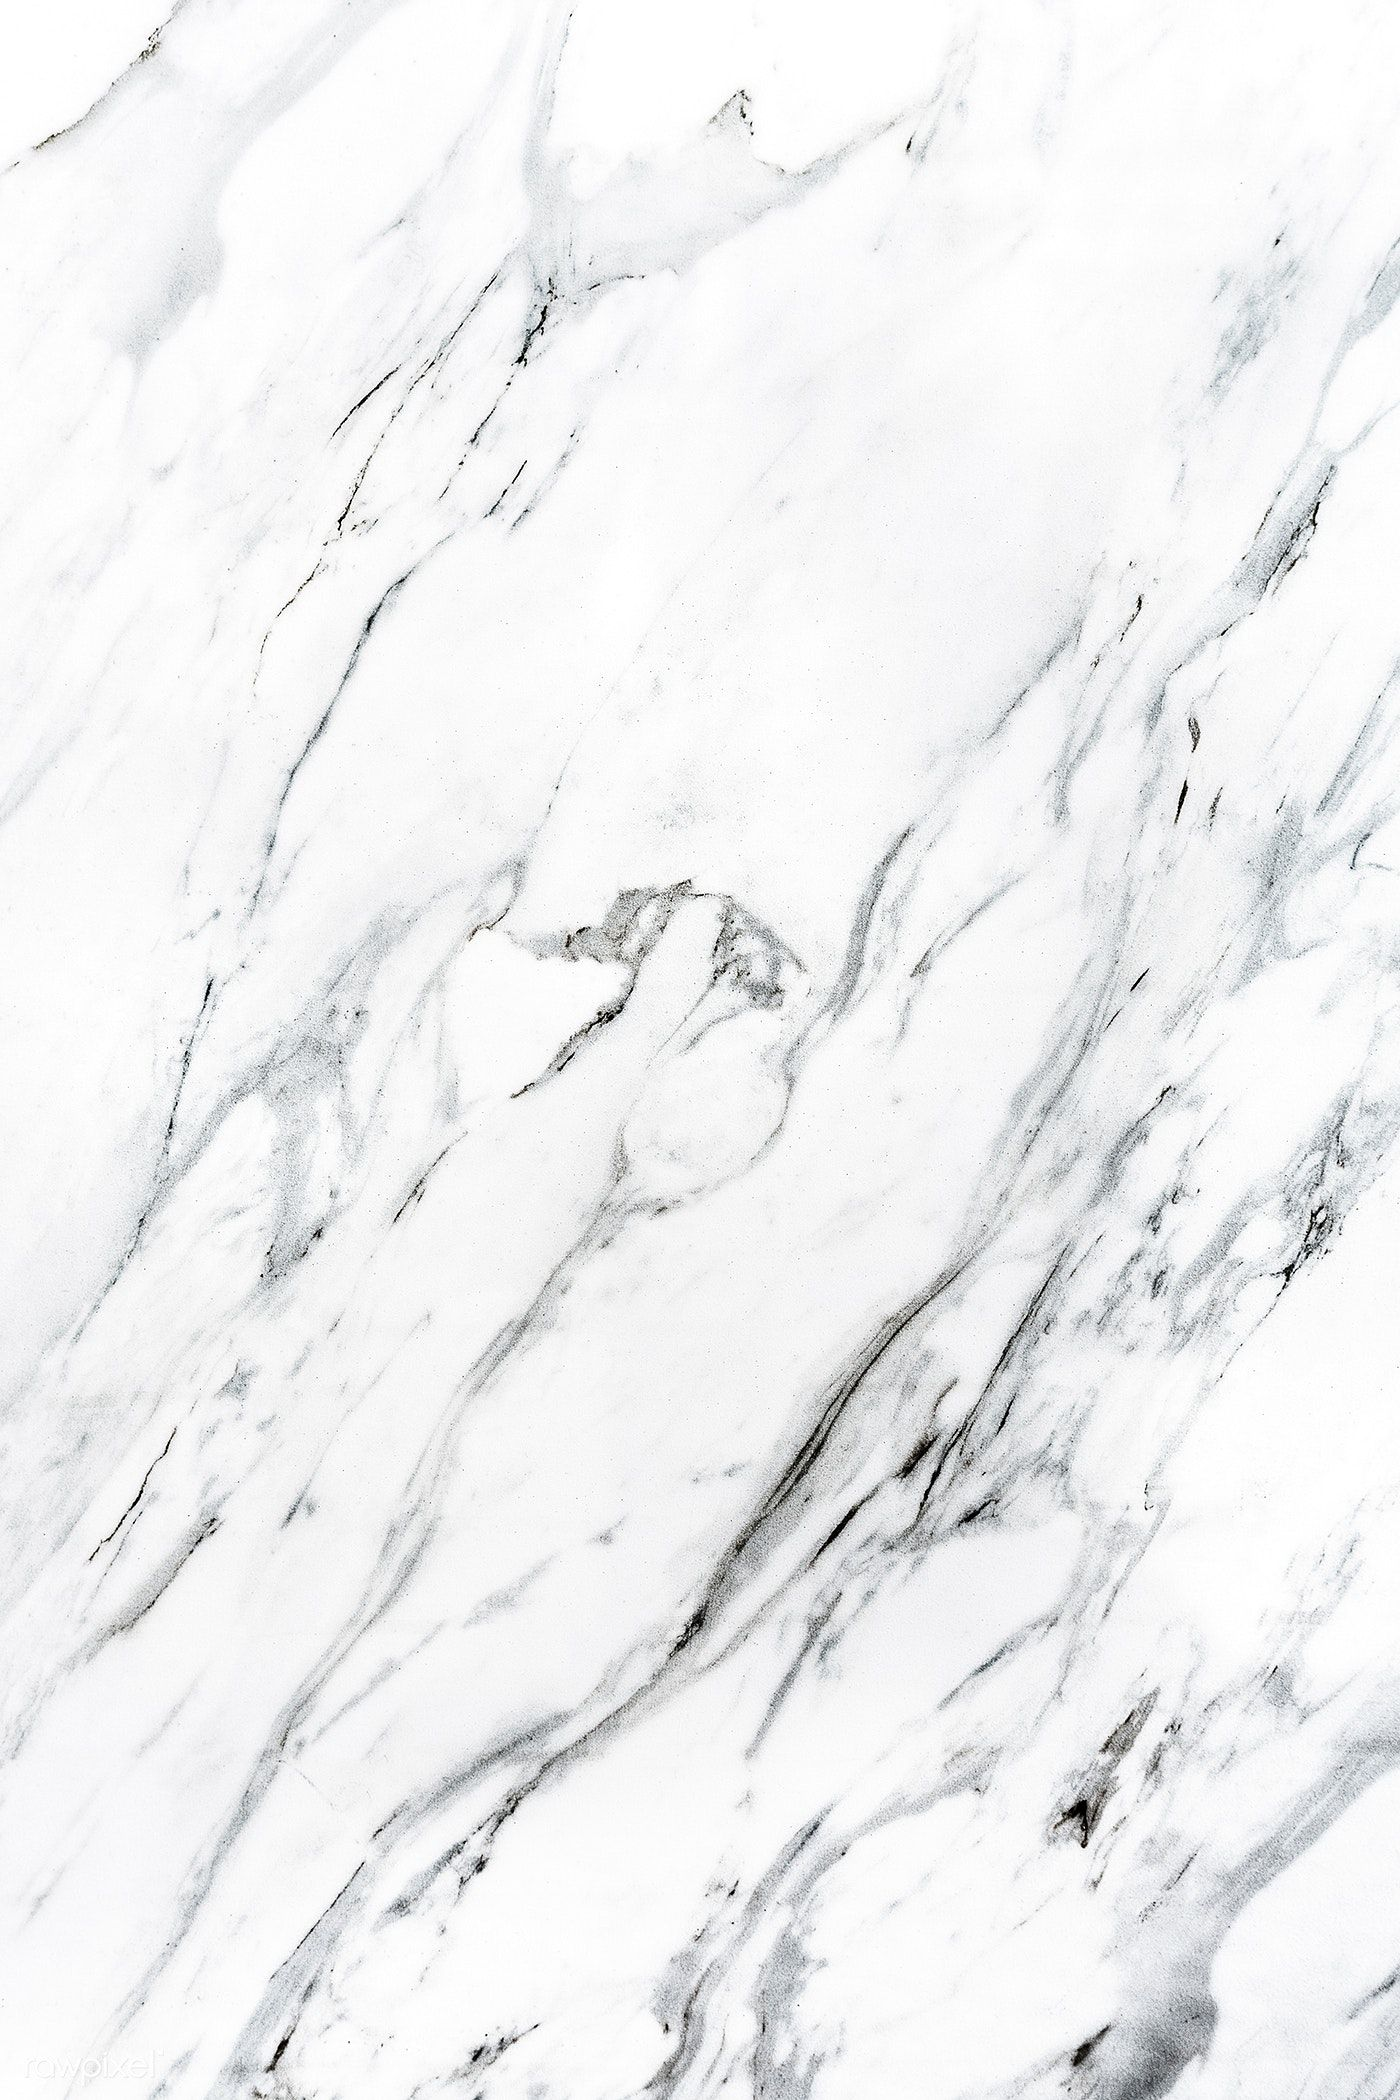 Download Premium Illustration Of White Gray Marble Textured Mobile Phone Grey Wallpaper Iphone Marble Wallpaper Hd Marble Iphone Wallpaper